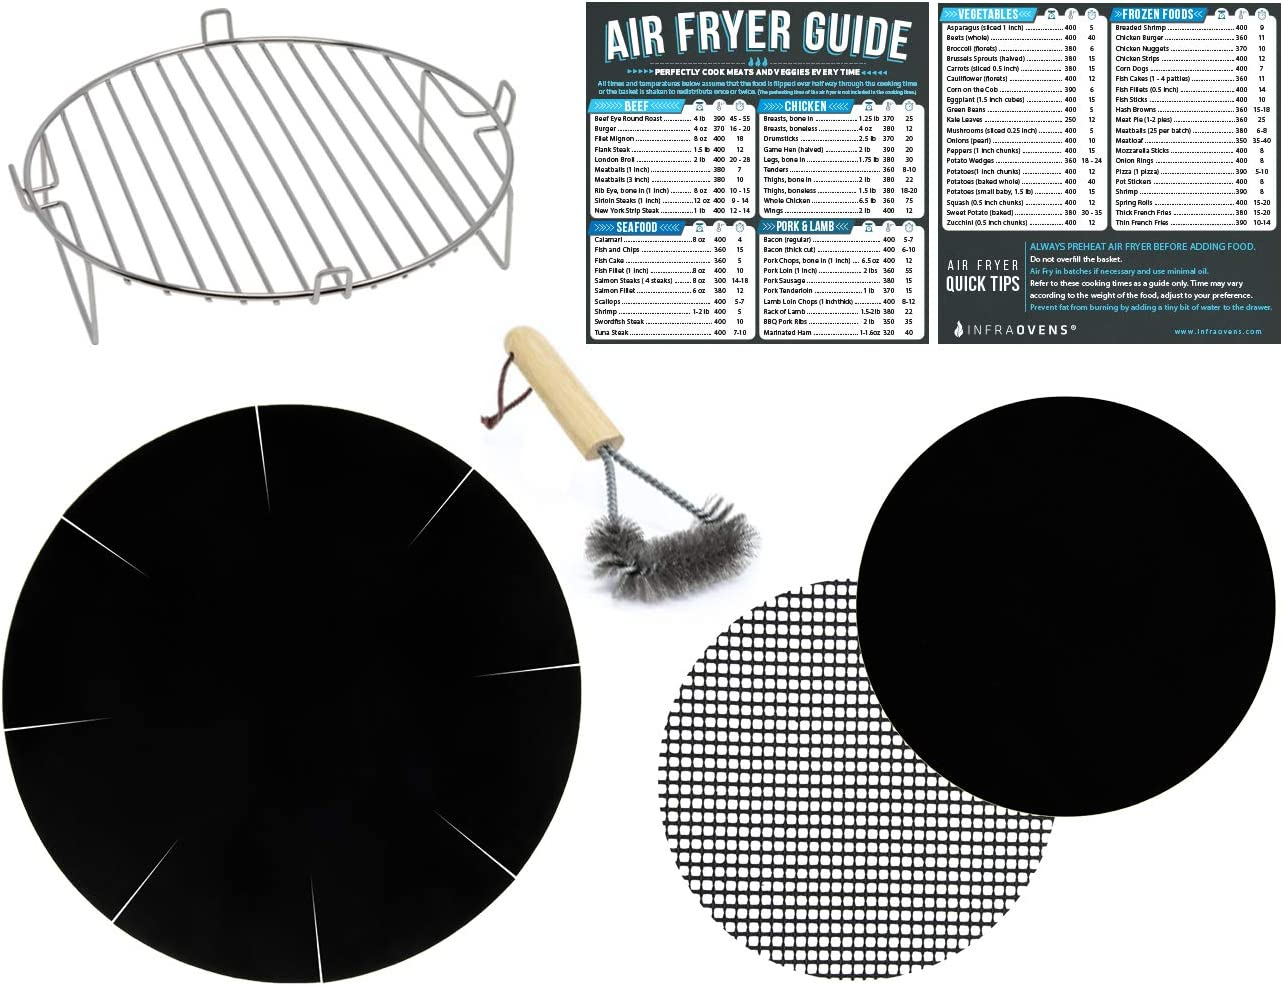 Air Fryer Accessories Compatible with Avalon Bay, Cozyna, Cusinaid, Della, GoWise, Habor, Keemo Ktaxon, Waterjoy +More | 3.2 – 4.2, 6.5 qt | Stainless Steel Rack, Magnetic Cheat Sheet Cooking Guides